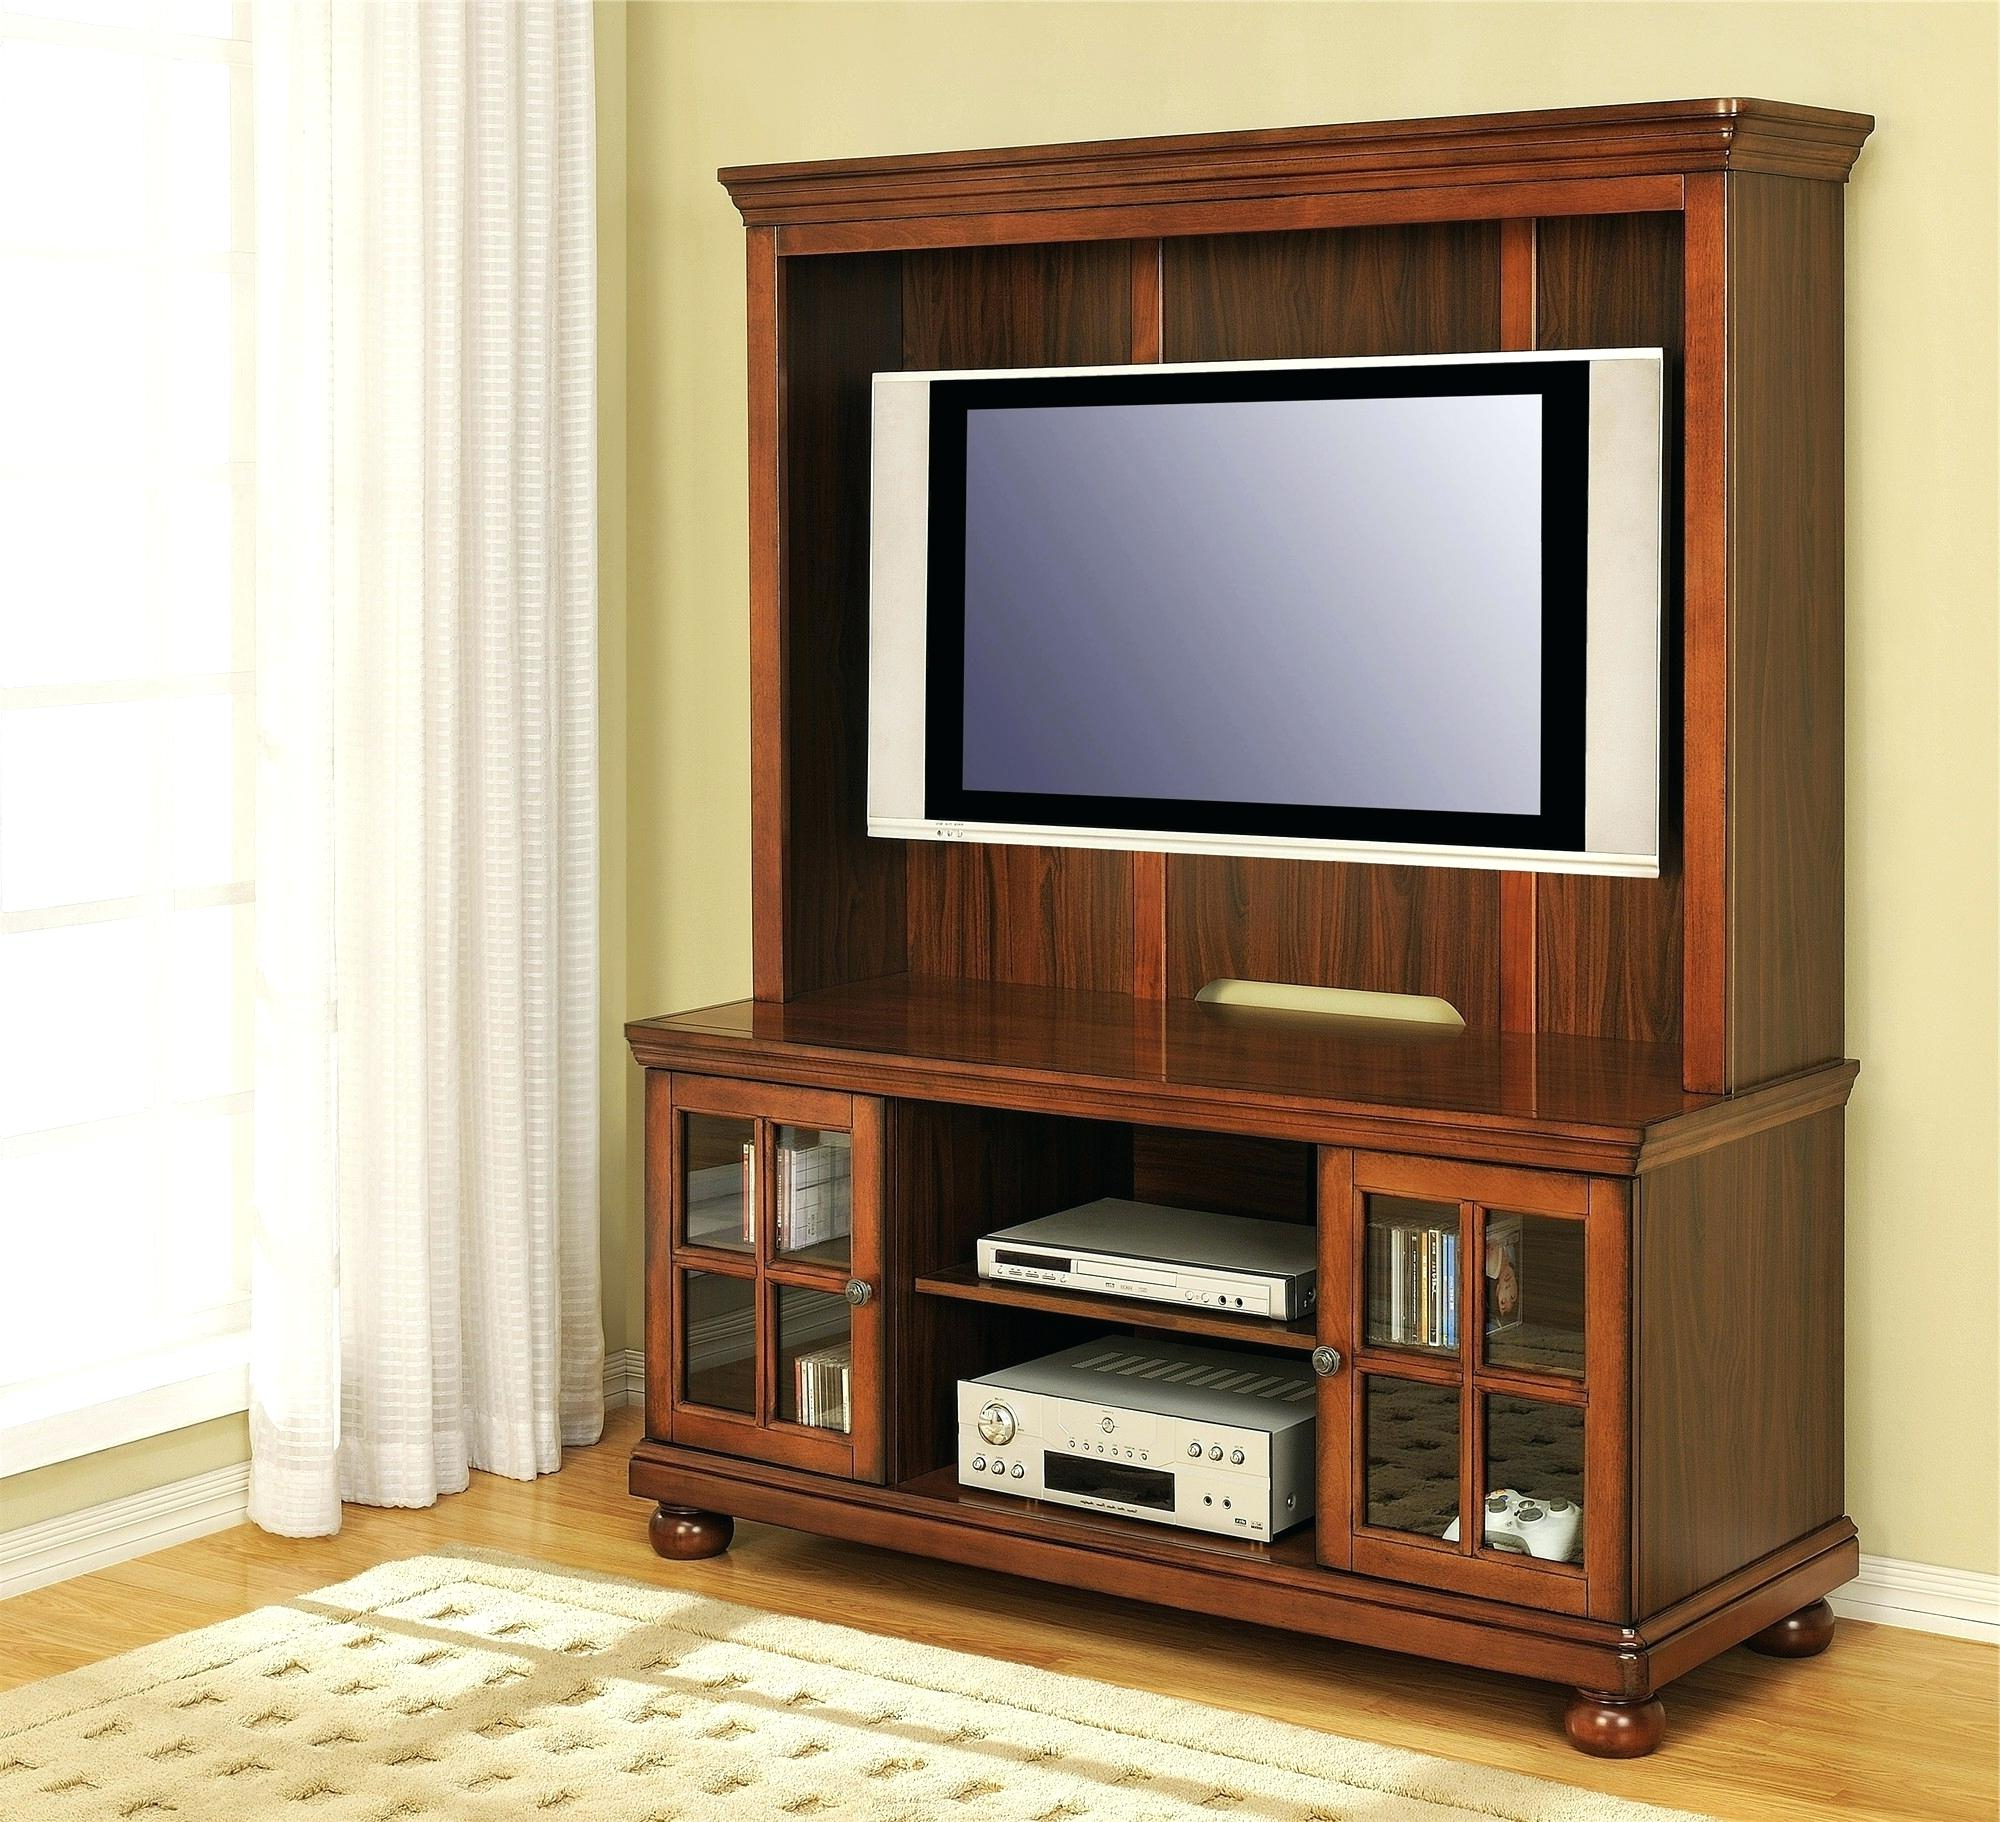 Enclosed Tv Cabinets For Flat Screens With Doors Throughout Popular Tv Cabinets With Doors John Lewis For Flat Screens Hide – Drobek (Gallery 8 of 20)